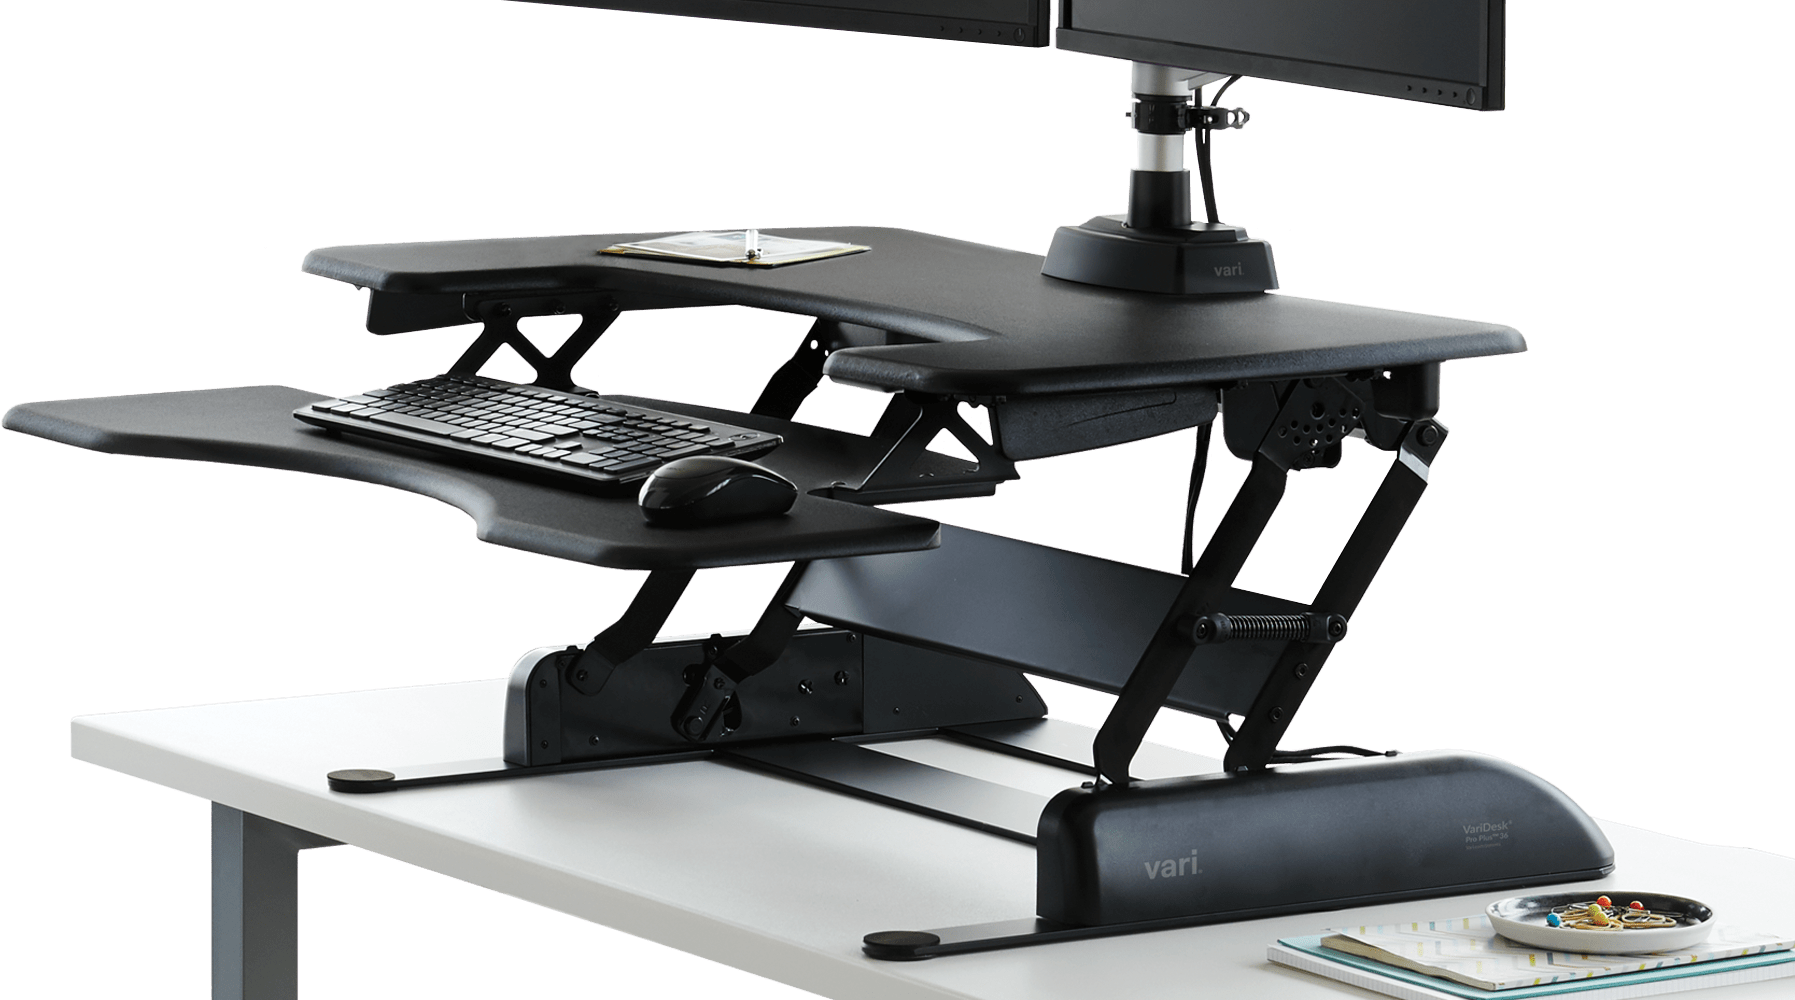 sit-stand converters to use on top of an existing desk